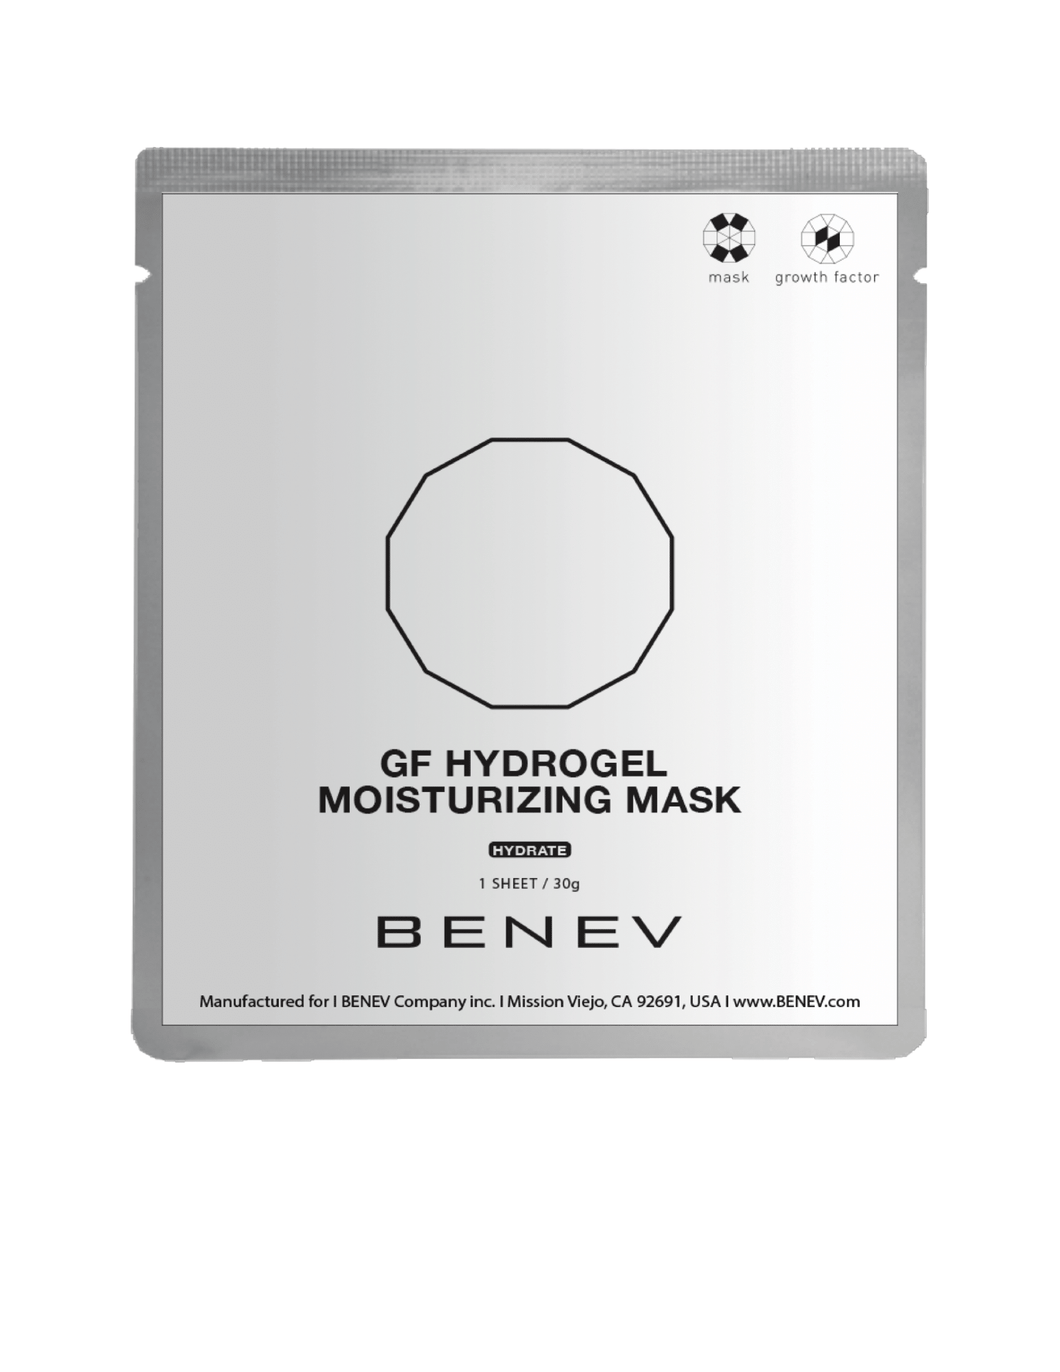 GF-HYDROGEL MOISTURIZING MASK (5 masks)